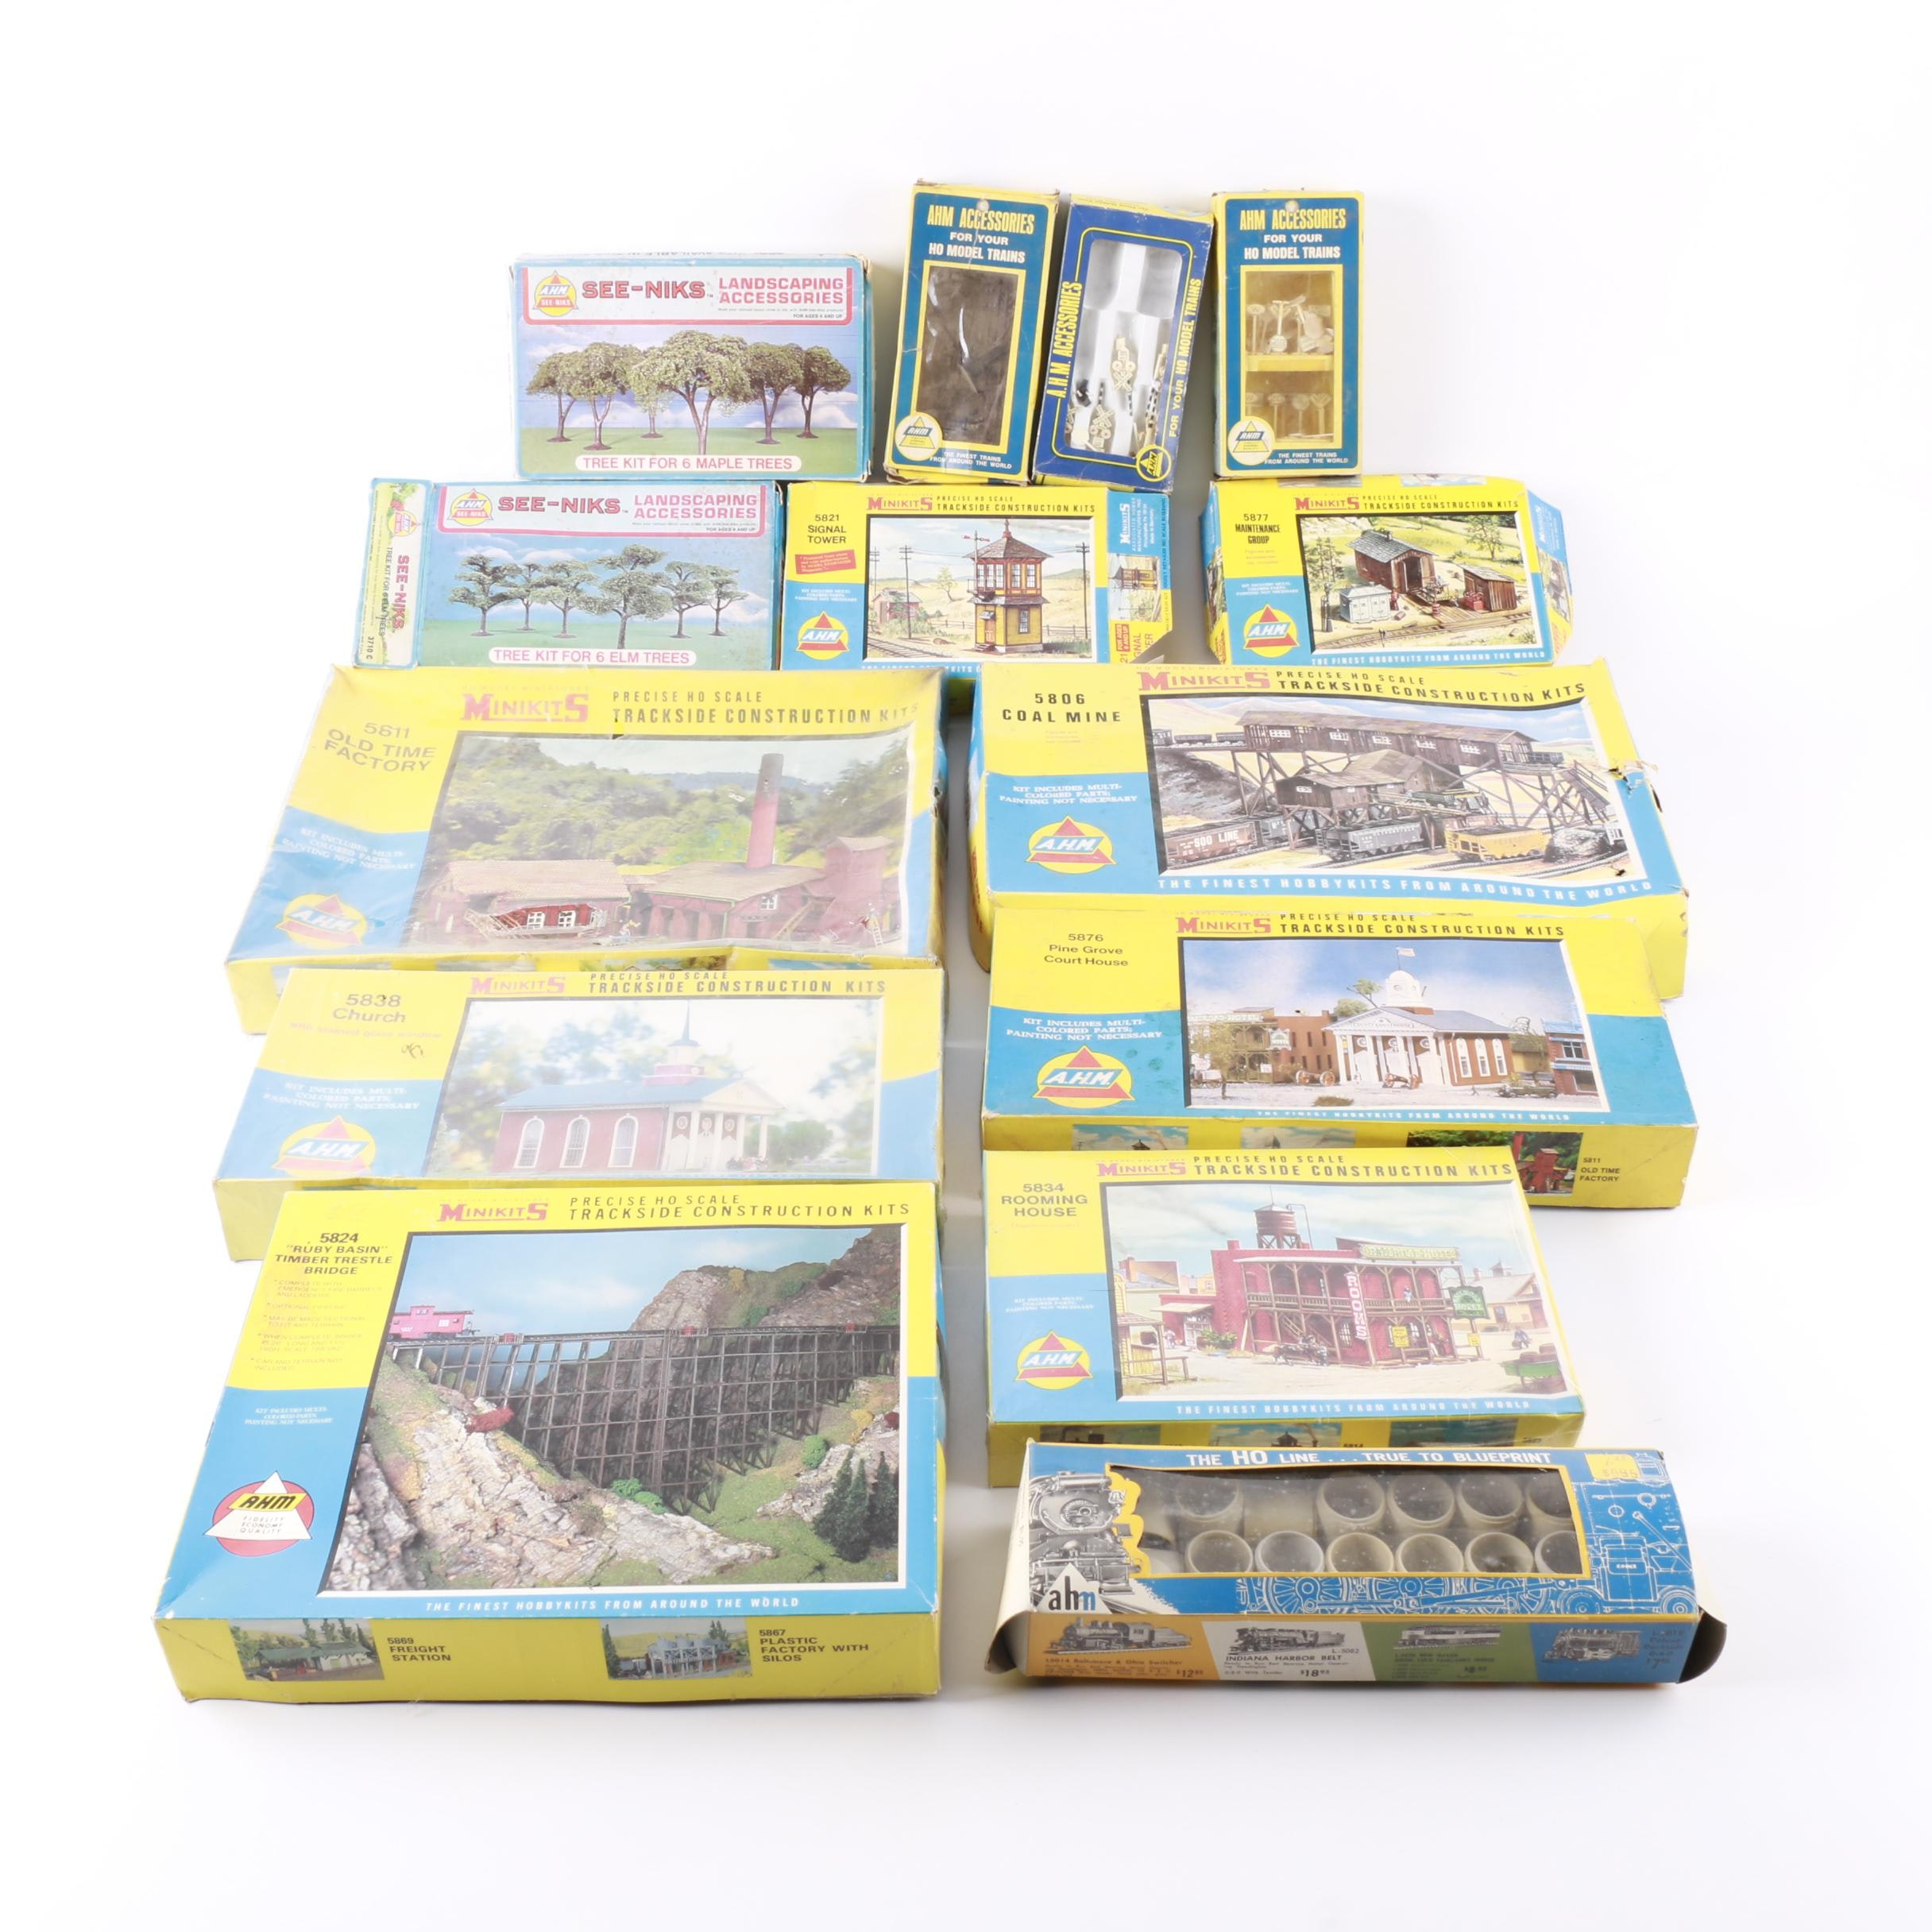 Collection of Model Kits for Railroad Scenes